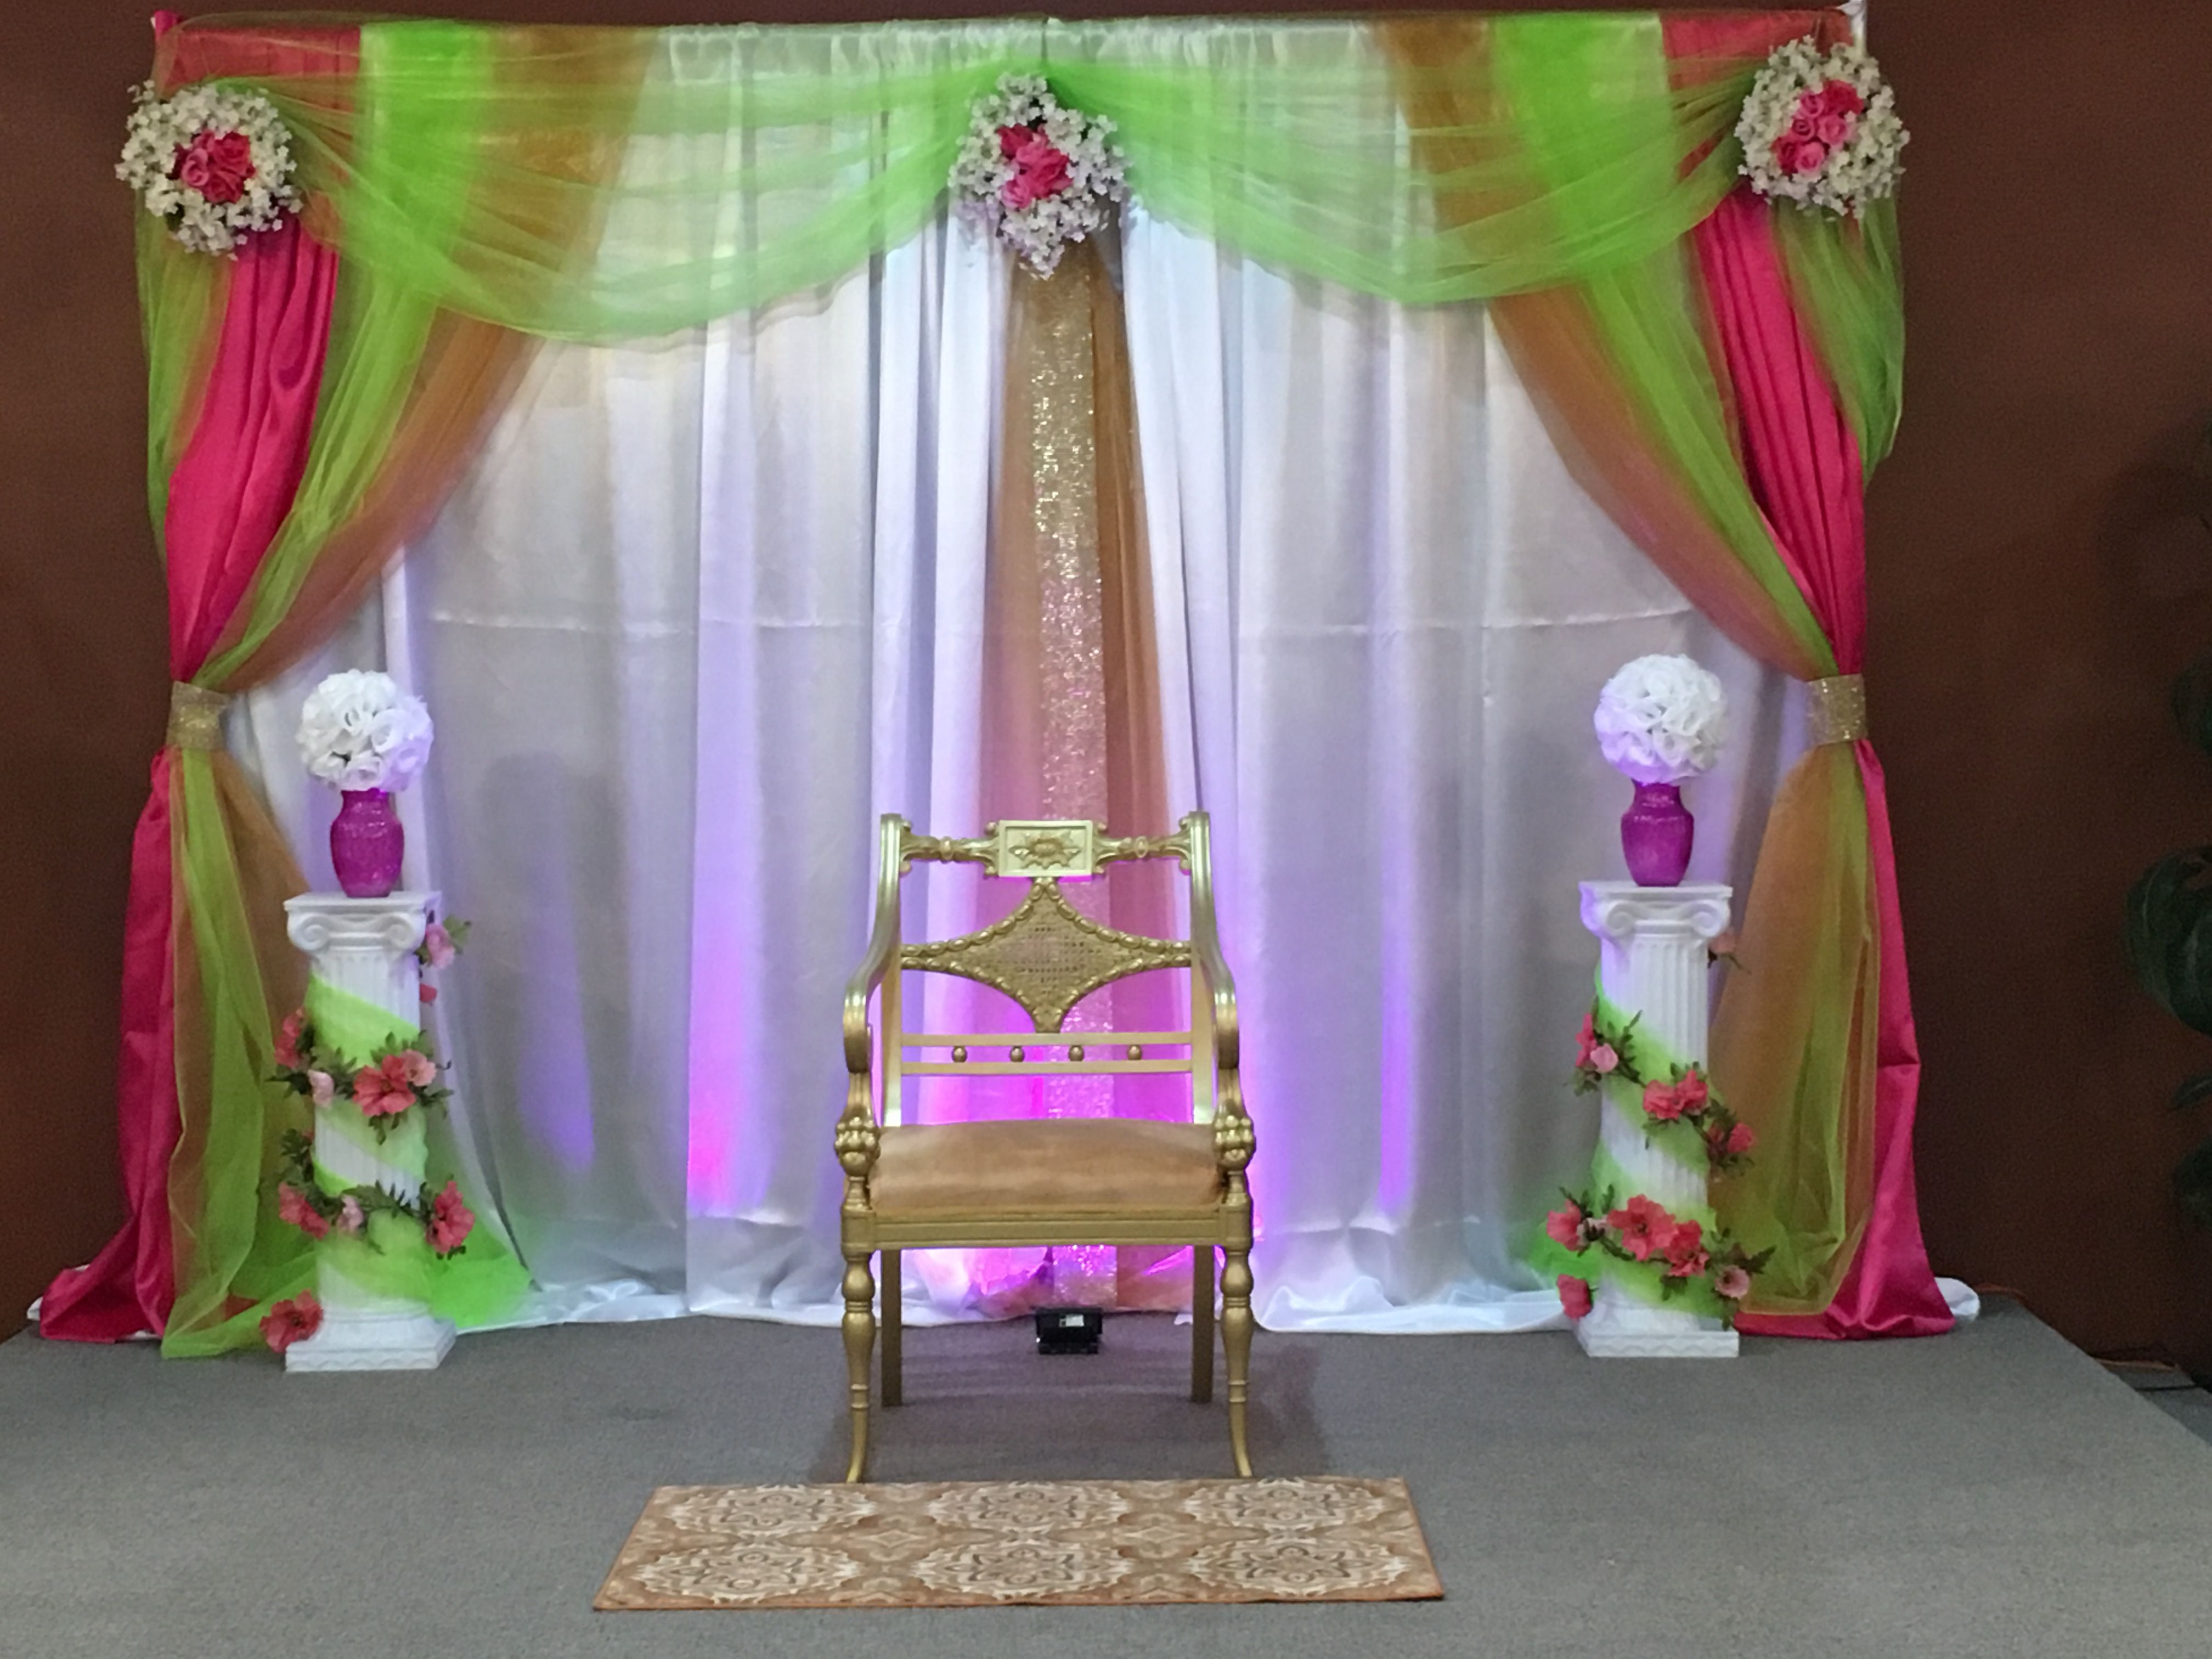 Bridal Shower, Baby Shower, Traditional Functions